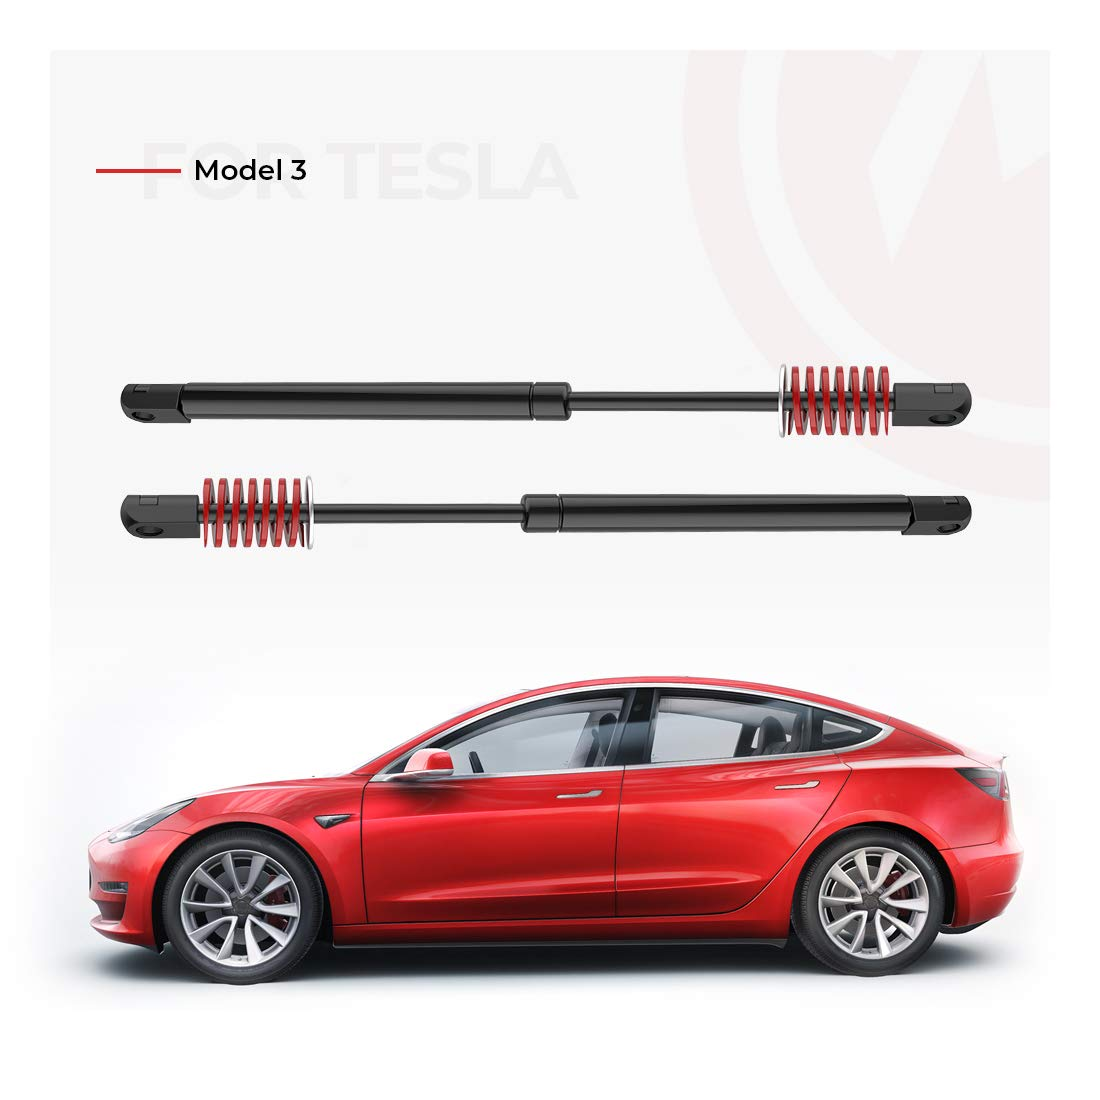 Upgraded Automatic Trunk Lift Support for Tesla Model 3 Rear Trunk Struts with Spring and Stainless Steel Washer Set of 2